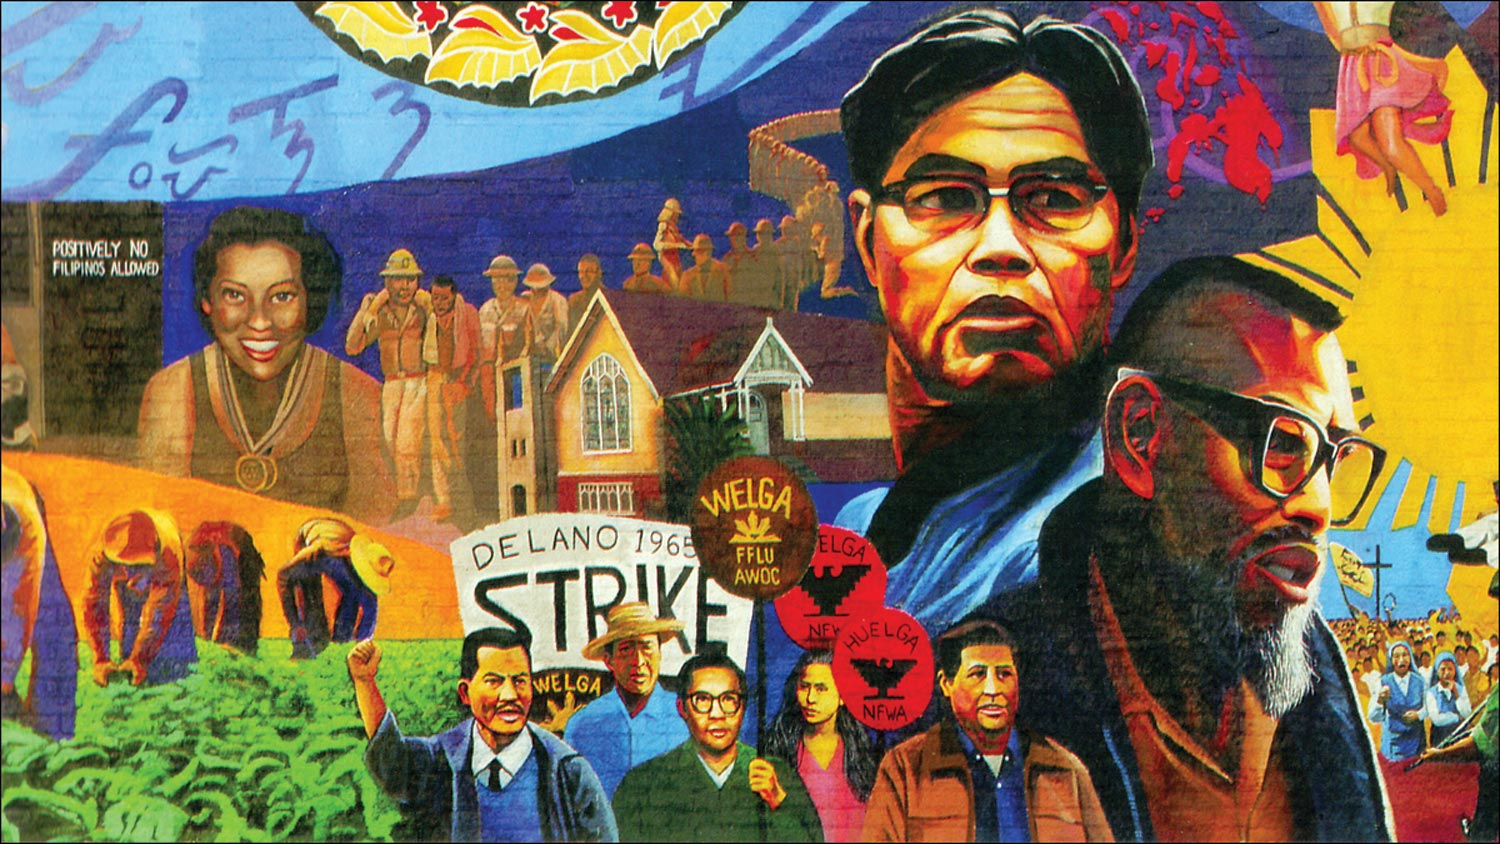 www.asianjournal.com: Social justice, activism and allyship: Filipino American History Month kicks off with calls to engage politically, culturally and socially —